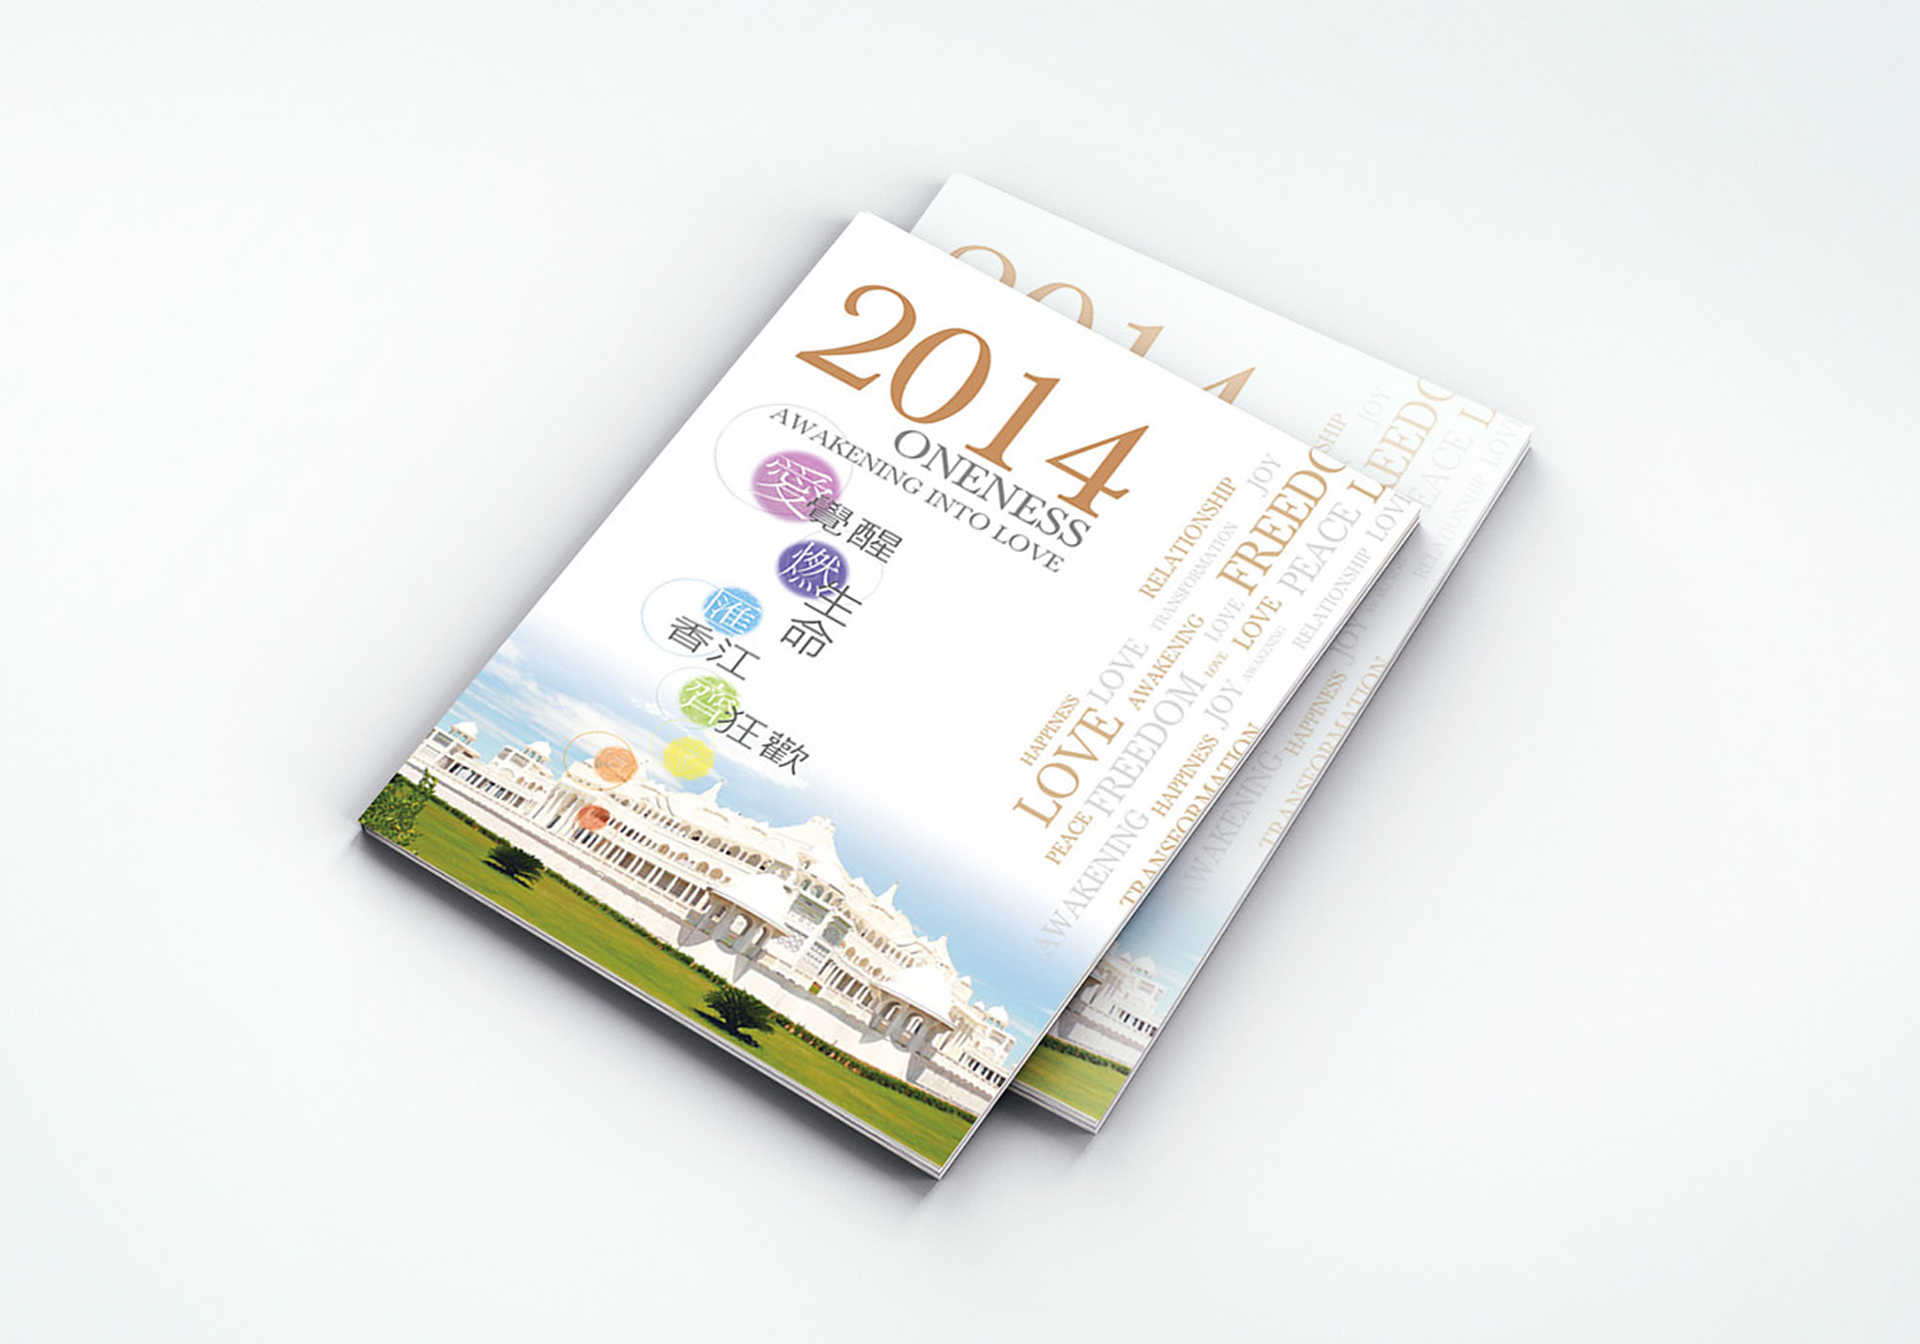 "Oneness Hong Kong ""2014 Oneness Awakening into Love'' event brochure"